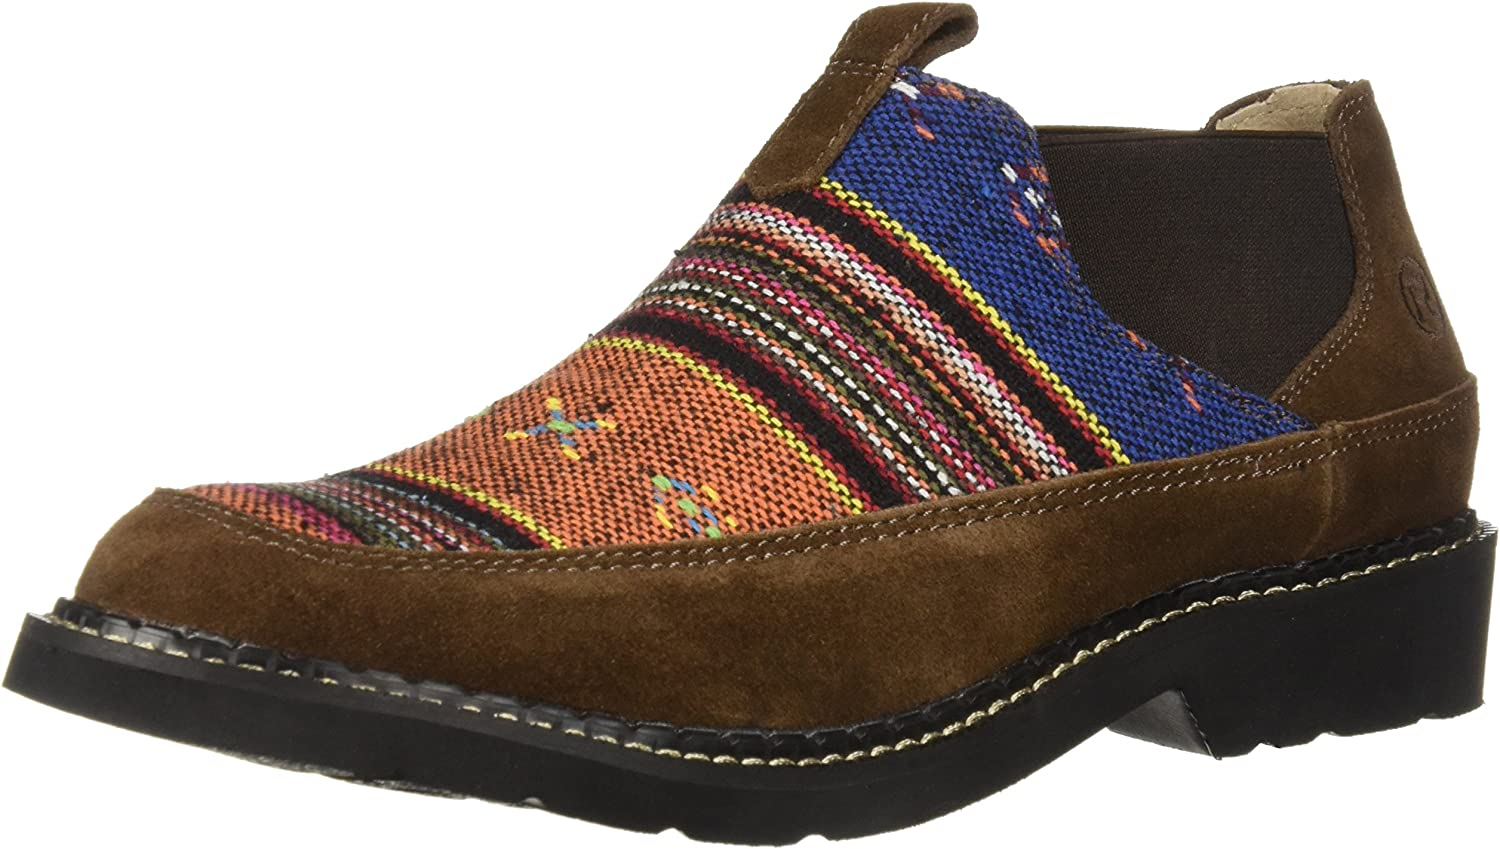 Roper Womens Isabel Driving Style Loafer